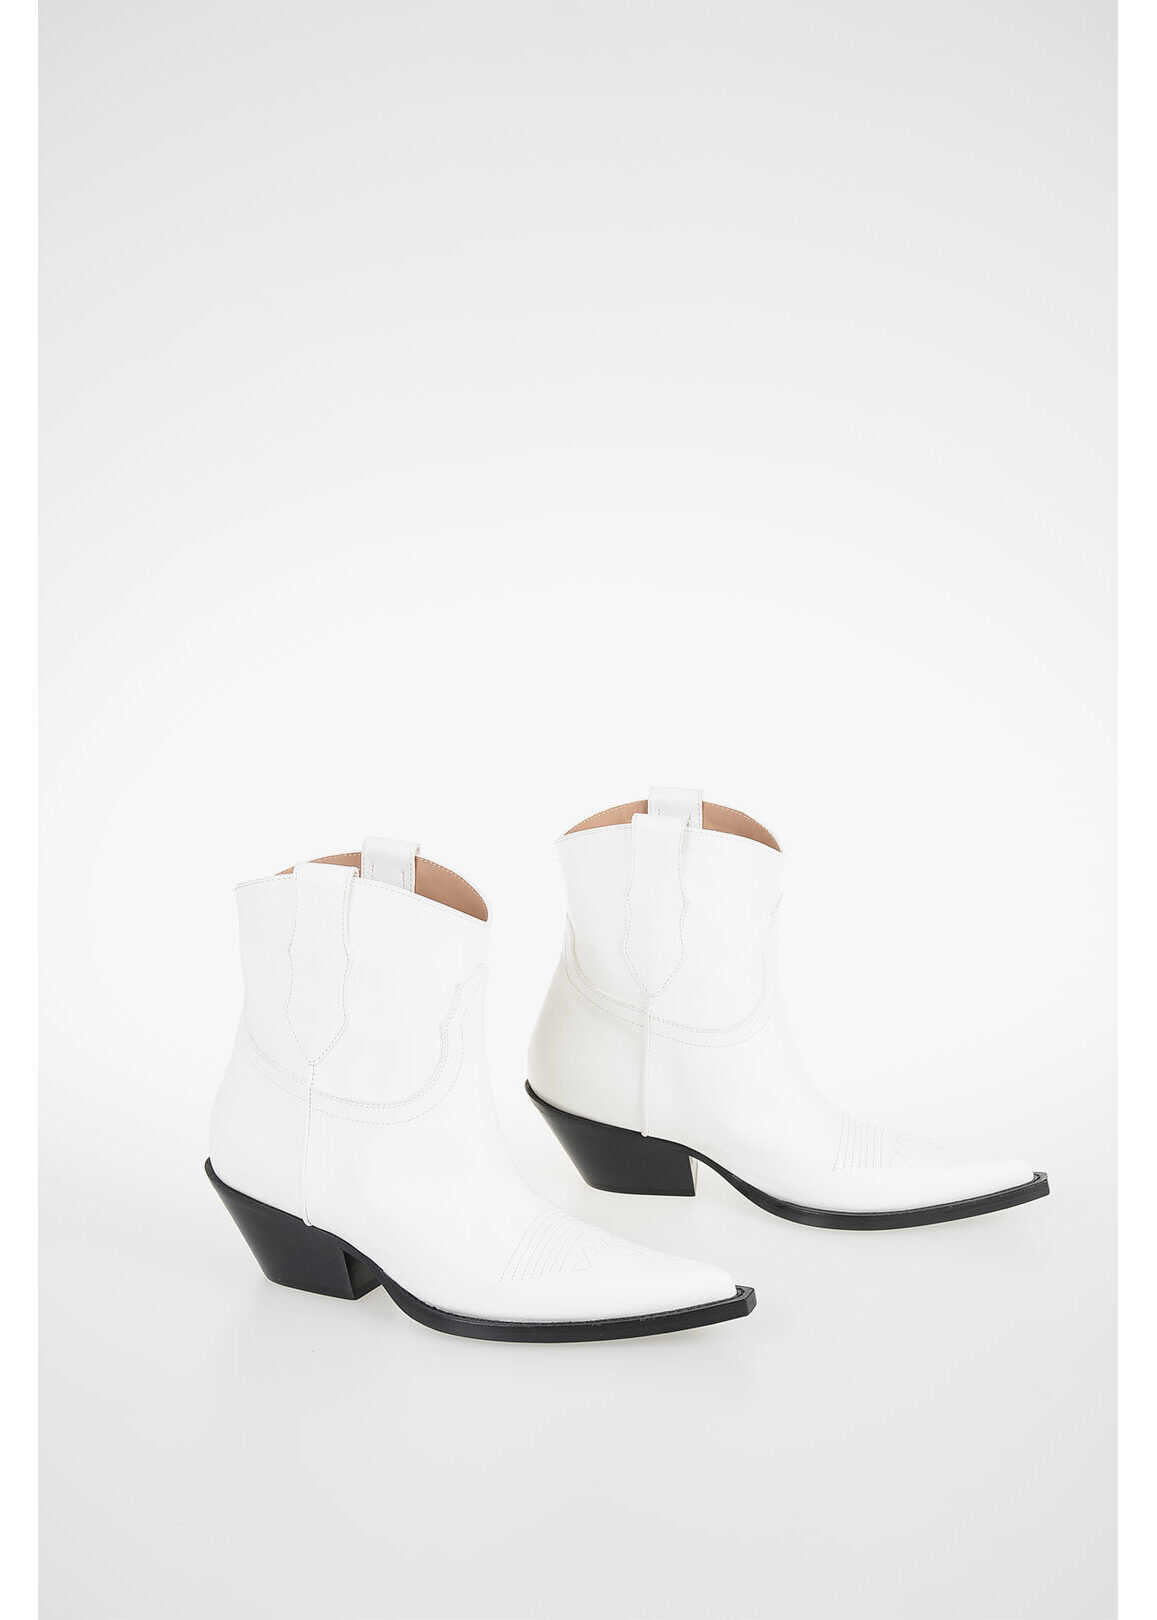 Maison Margiela MM22 6cm Leather Ankle Boot WHITE